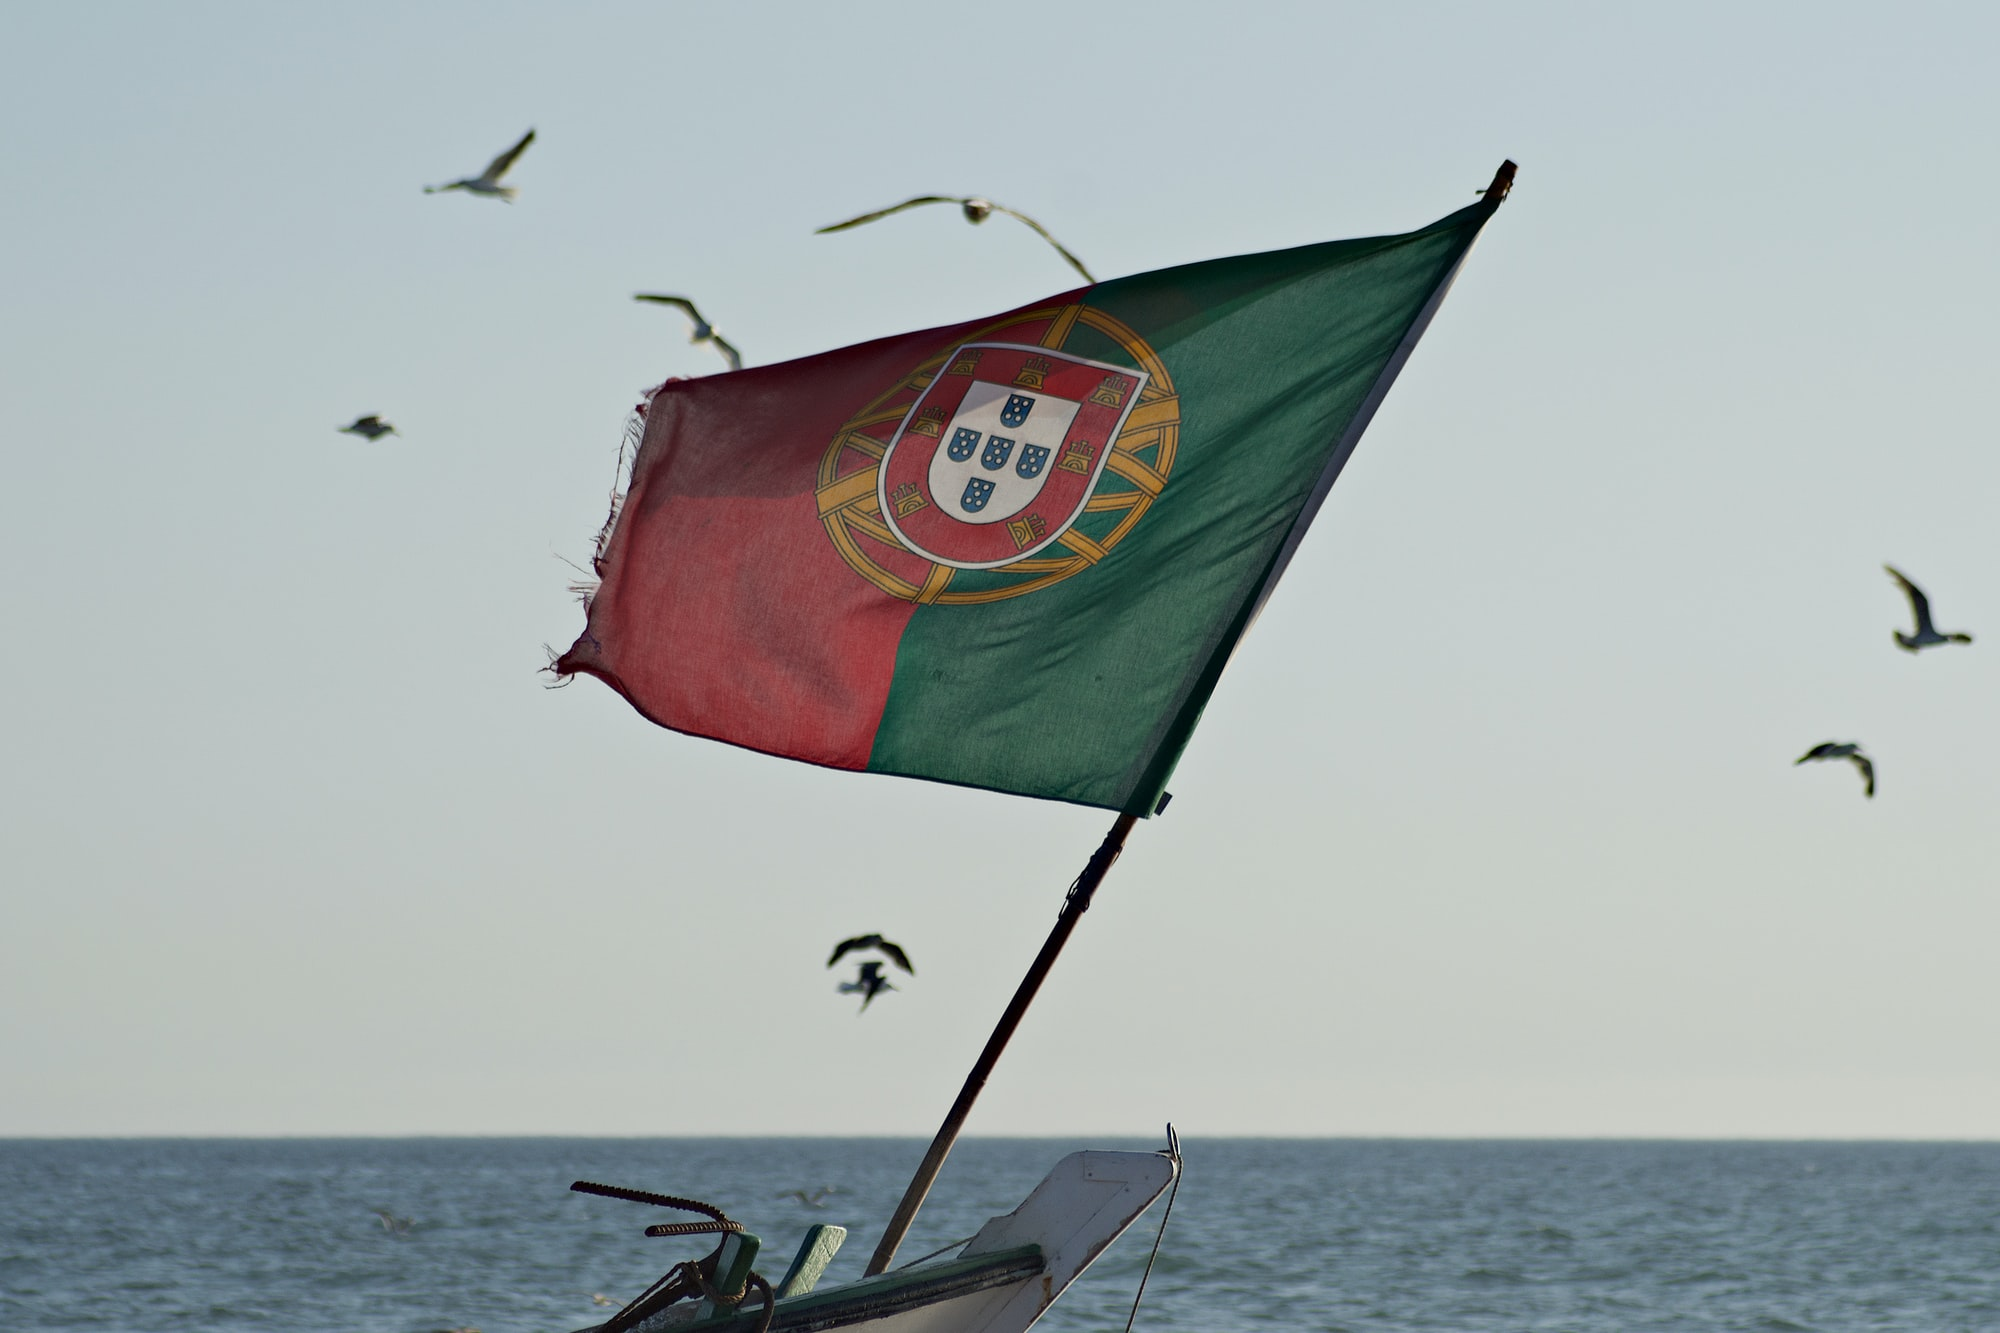 Portuguese flag hoisted on a fishing boat, with seagulls in the background